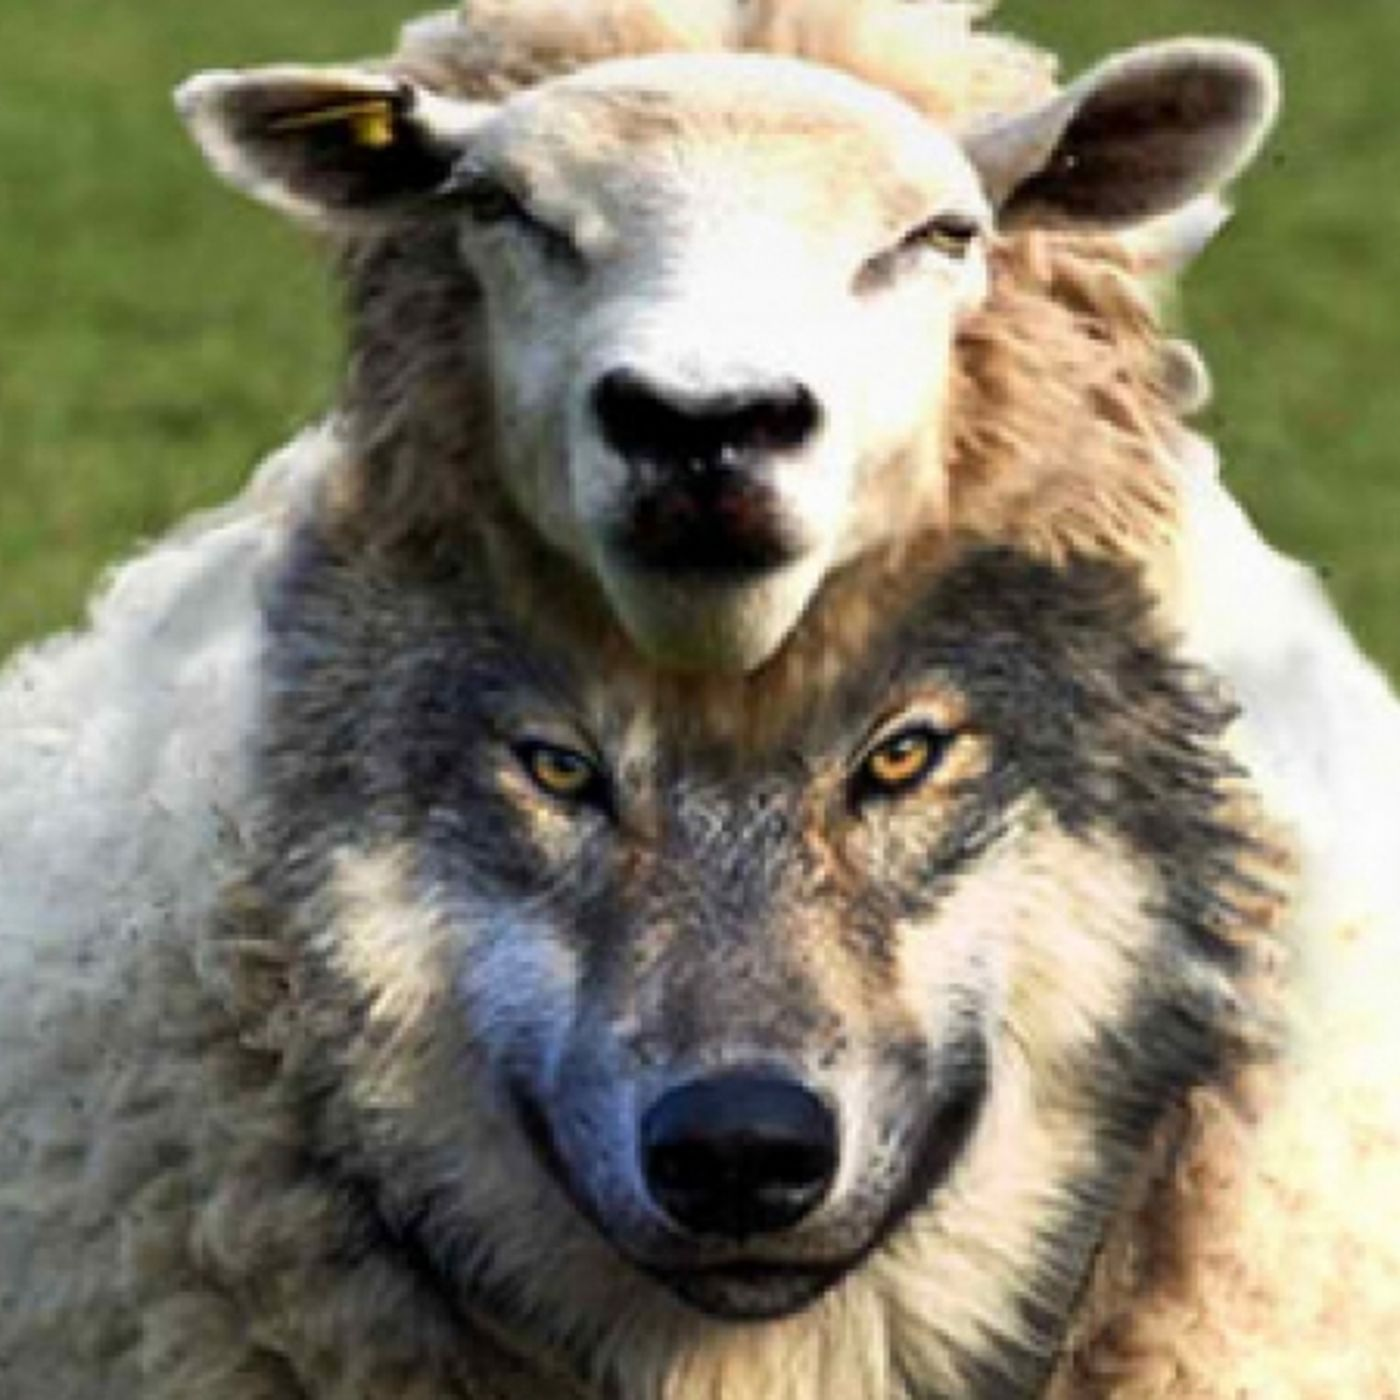 Politicians and Goverment Officials are False Prophets